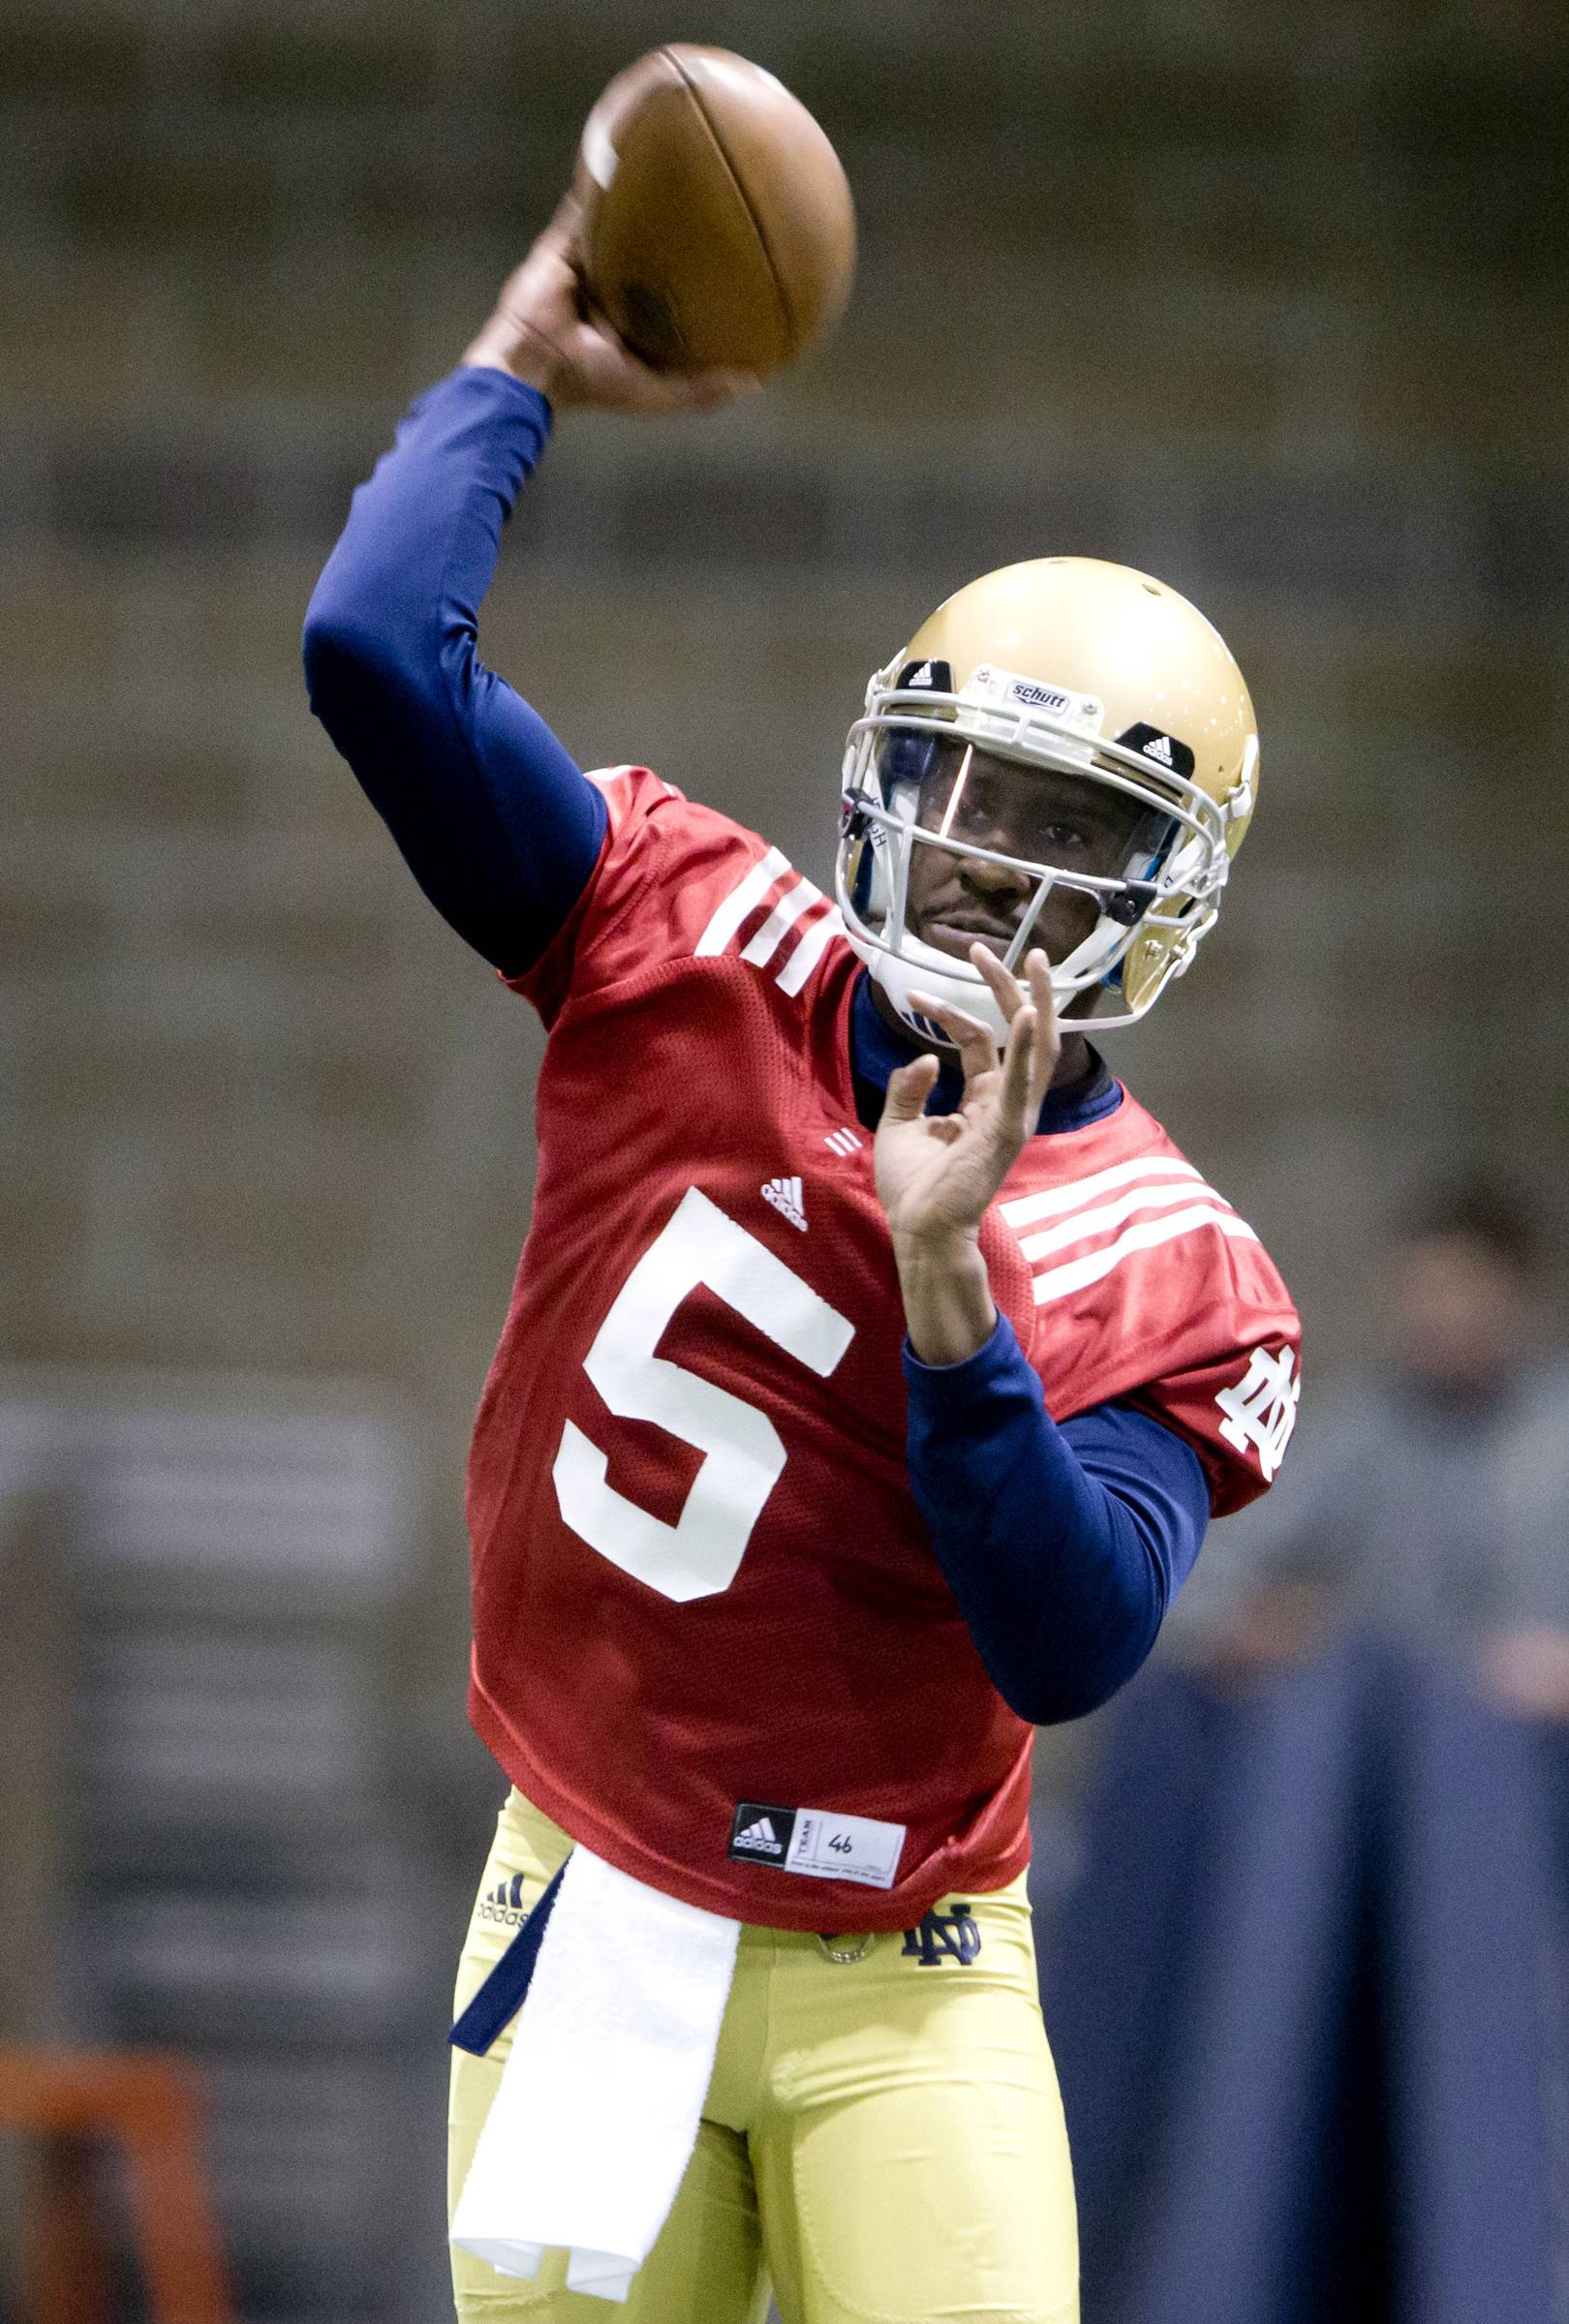 Notre Dame quarterback Everett Golson throws on the opening day of spring football practice Monday, in South Bend, Ind. The Irish are expecting the 6-foot, 200-pound quarterback to be better than he was in 2012, when he helped Notre Dame get to the national championship game.